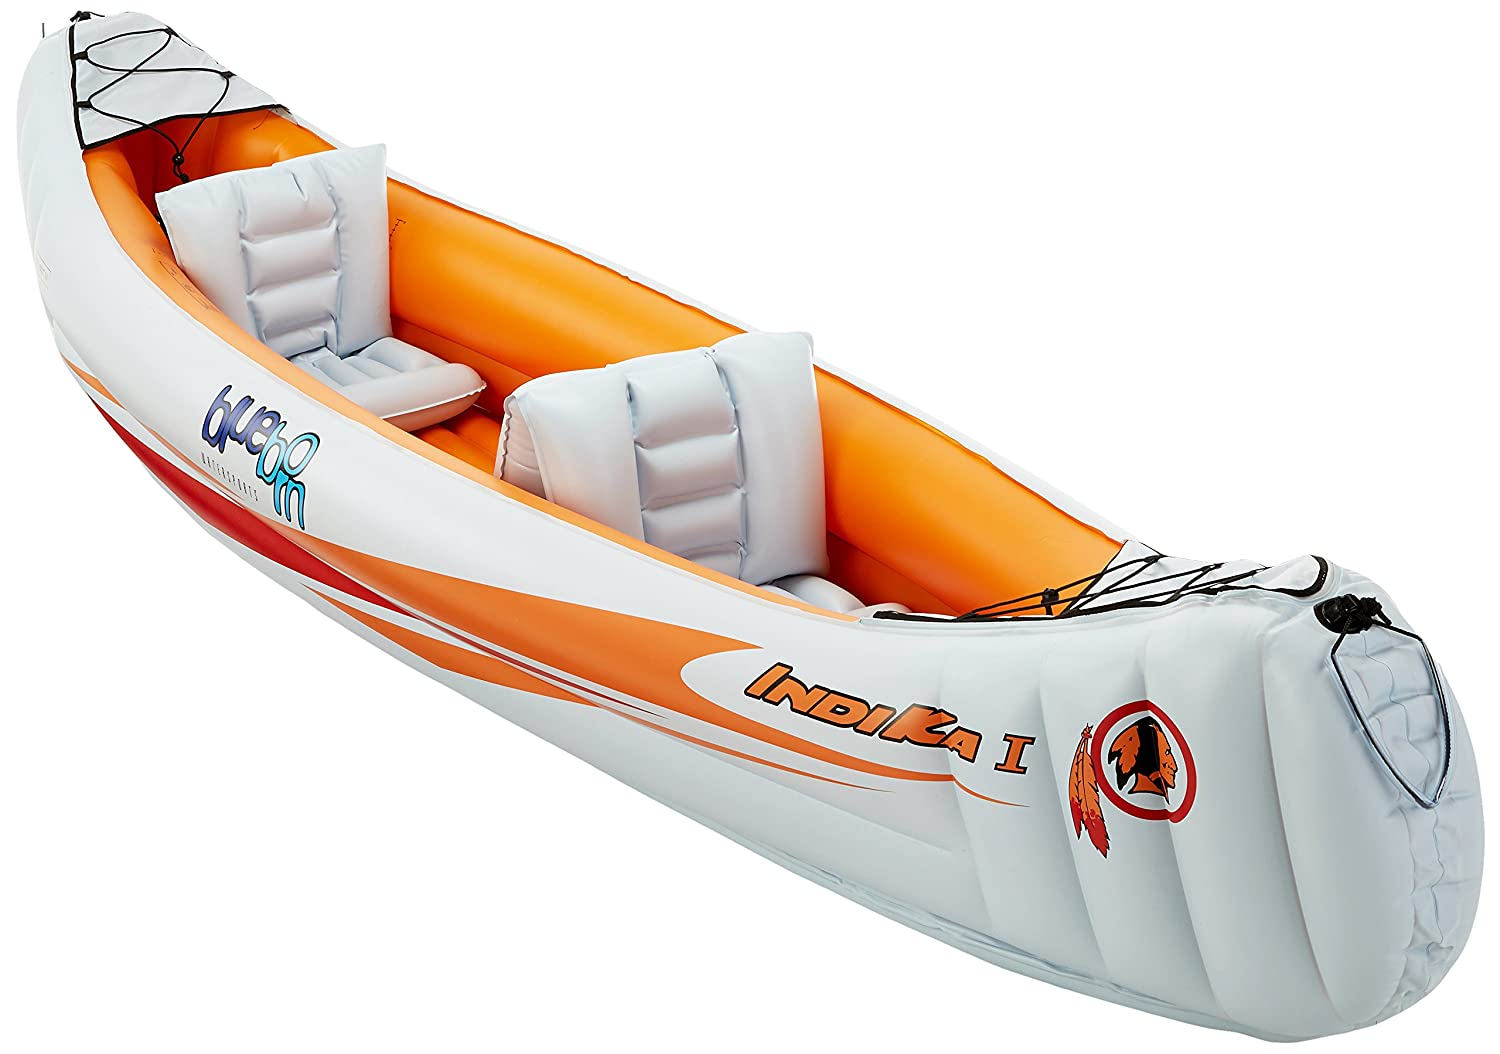 BLUEBORN Boat Indika 1-2 person canoe 320x80cm (load capacity 165kg) 520583 520583_orange/hellblau